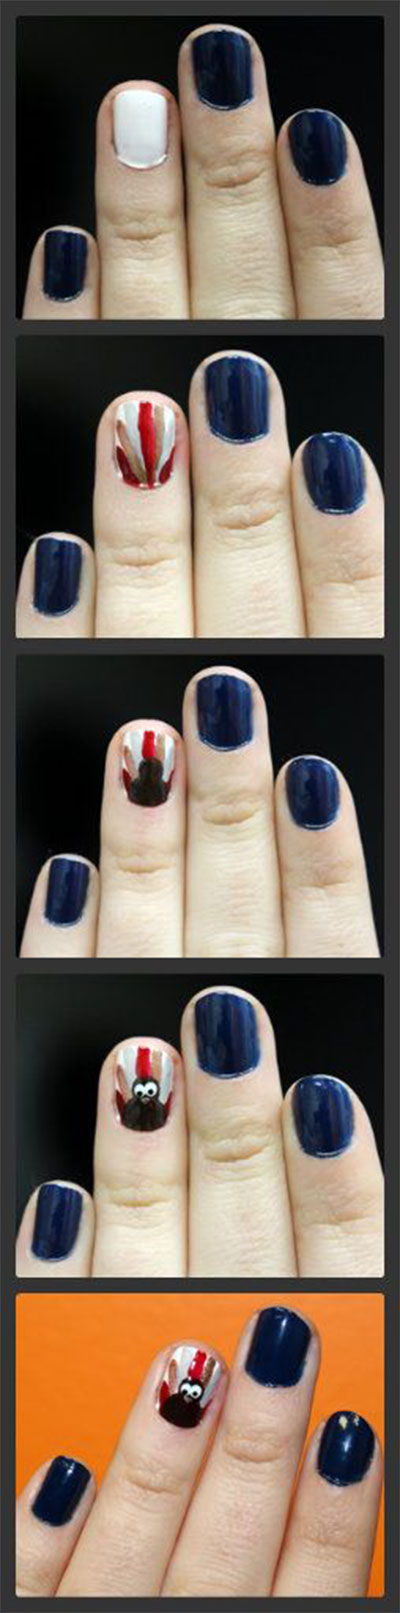 Simple-Step-By-Step-Thanksgiving-Nail-Art-Tutorials-For-Beginners-2014-5